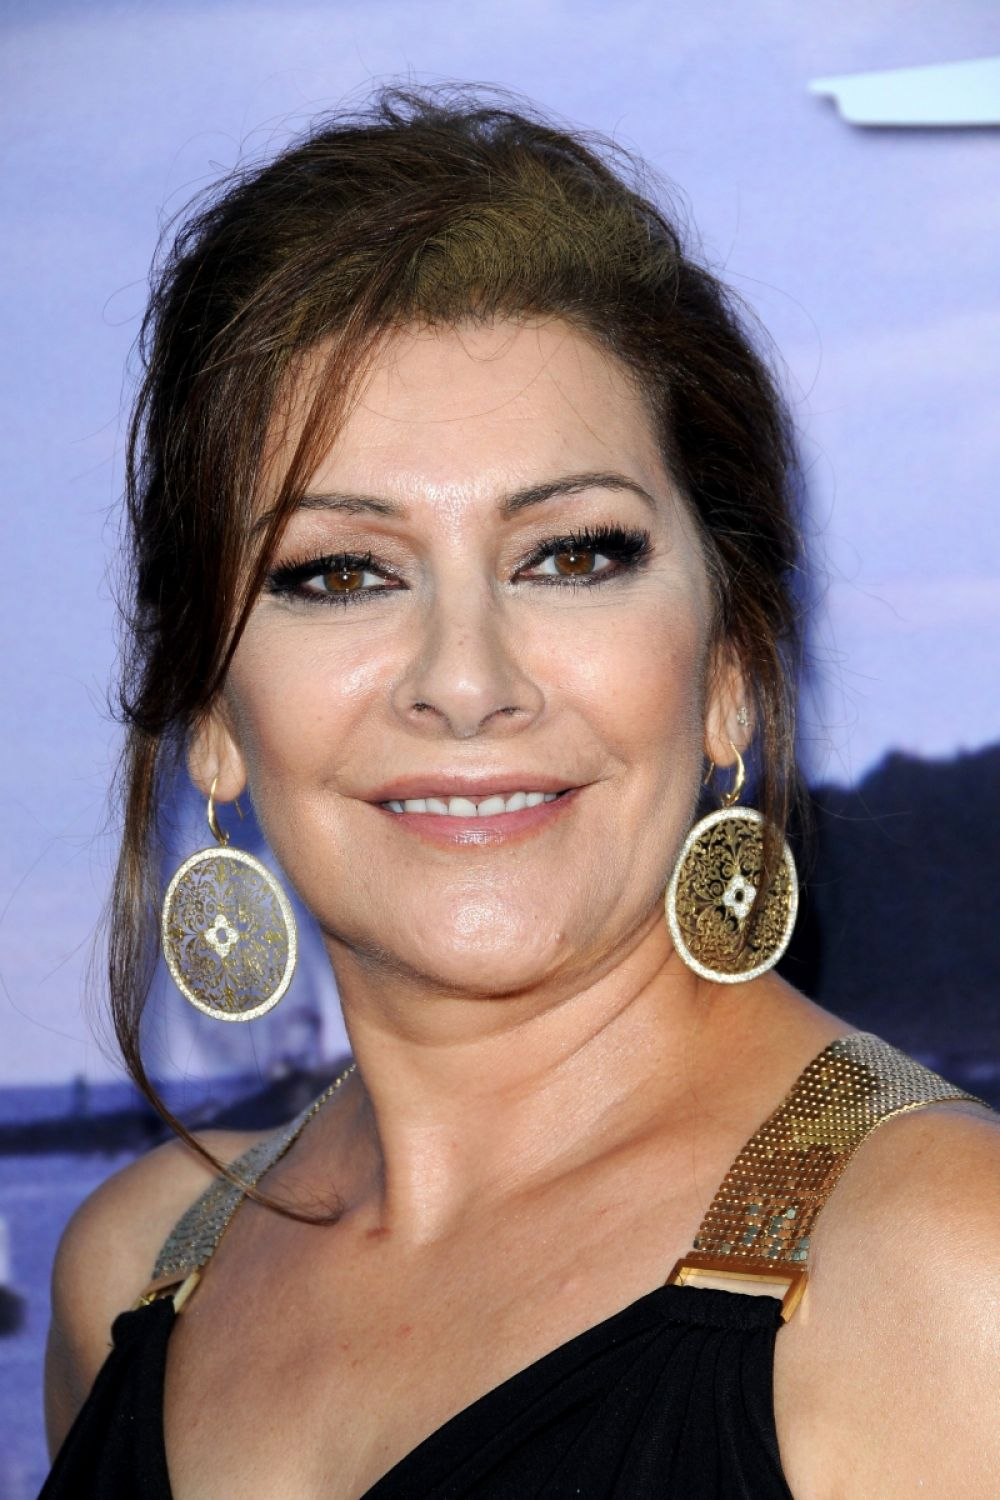 MARINA SIRTIS at Hallmark Movies and Mysteries Summer 2016 TCA Press Tour in Beverly Hills 07/27/2016